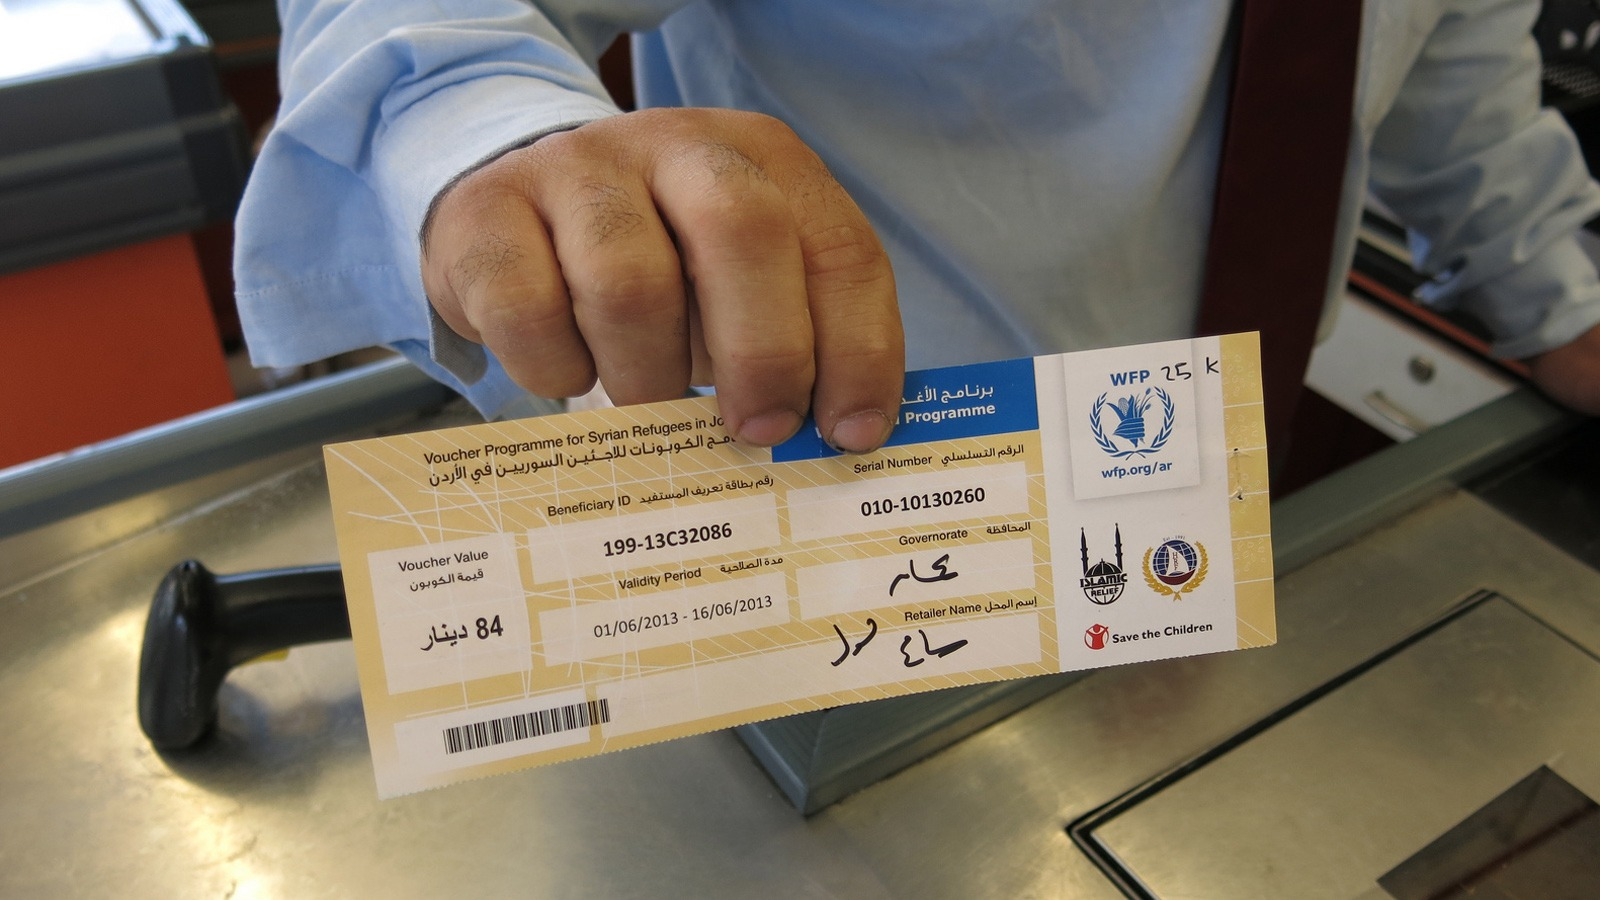 A shopkeeper holds up a WFP food voucher in a supermarket in Jordan